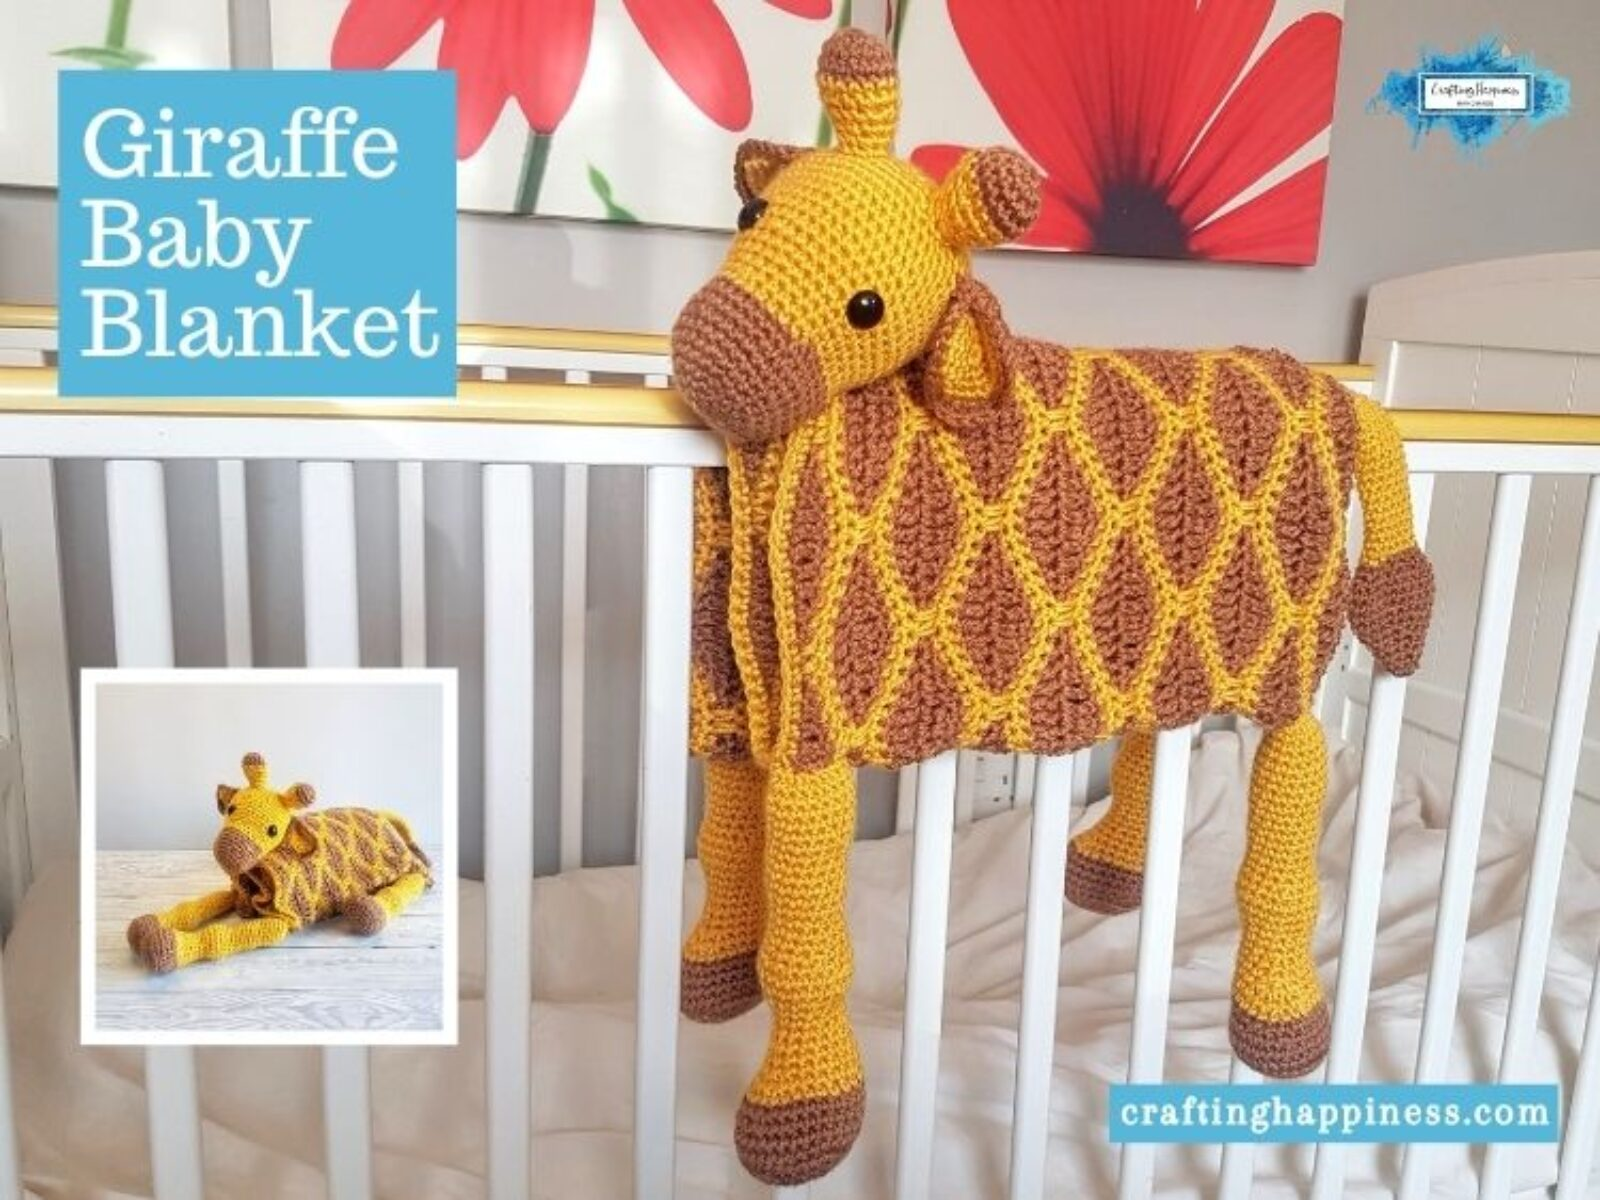 Giraffe Baby Blanket by Crafting Happiness FACEBOOK POSTER